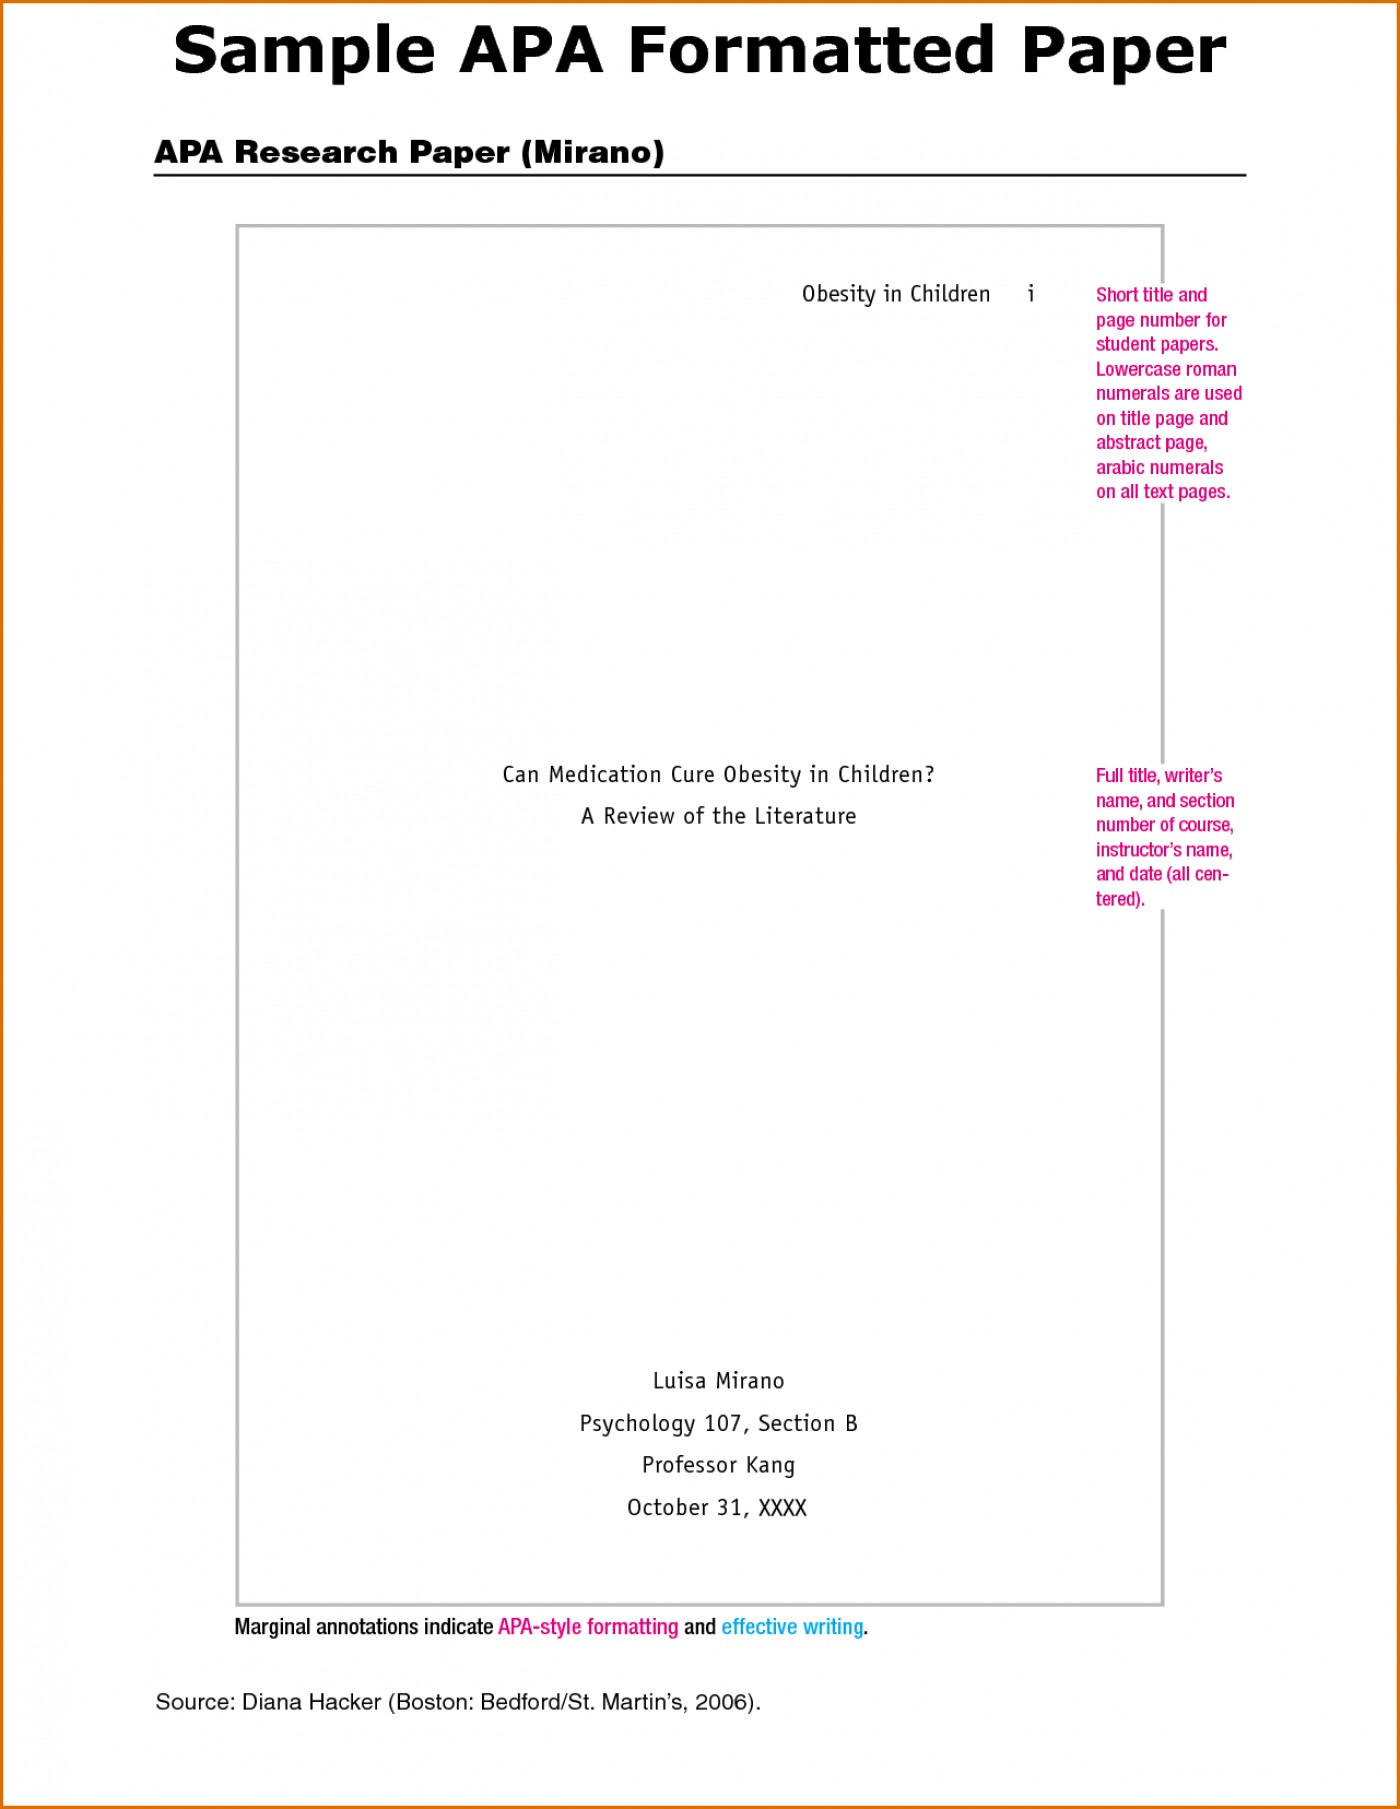 017 Research Paper Autism Apa Format Template Frightening - 1400